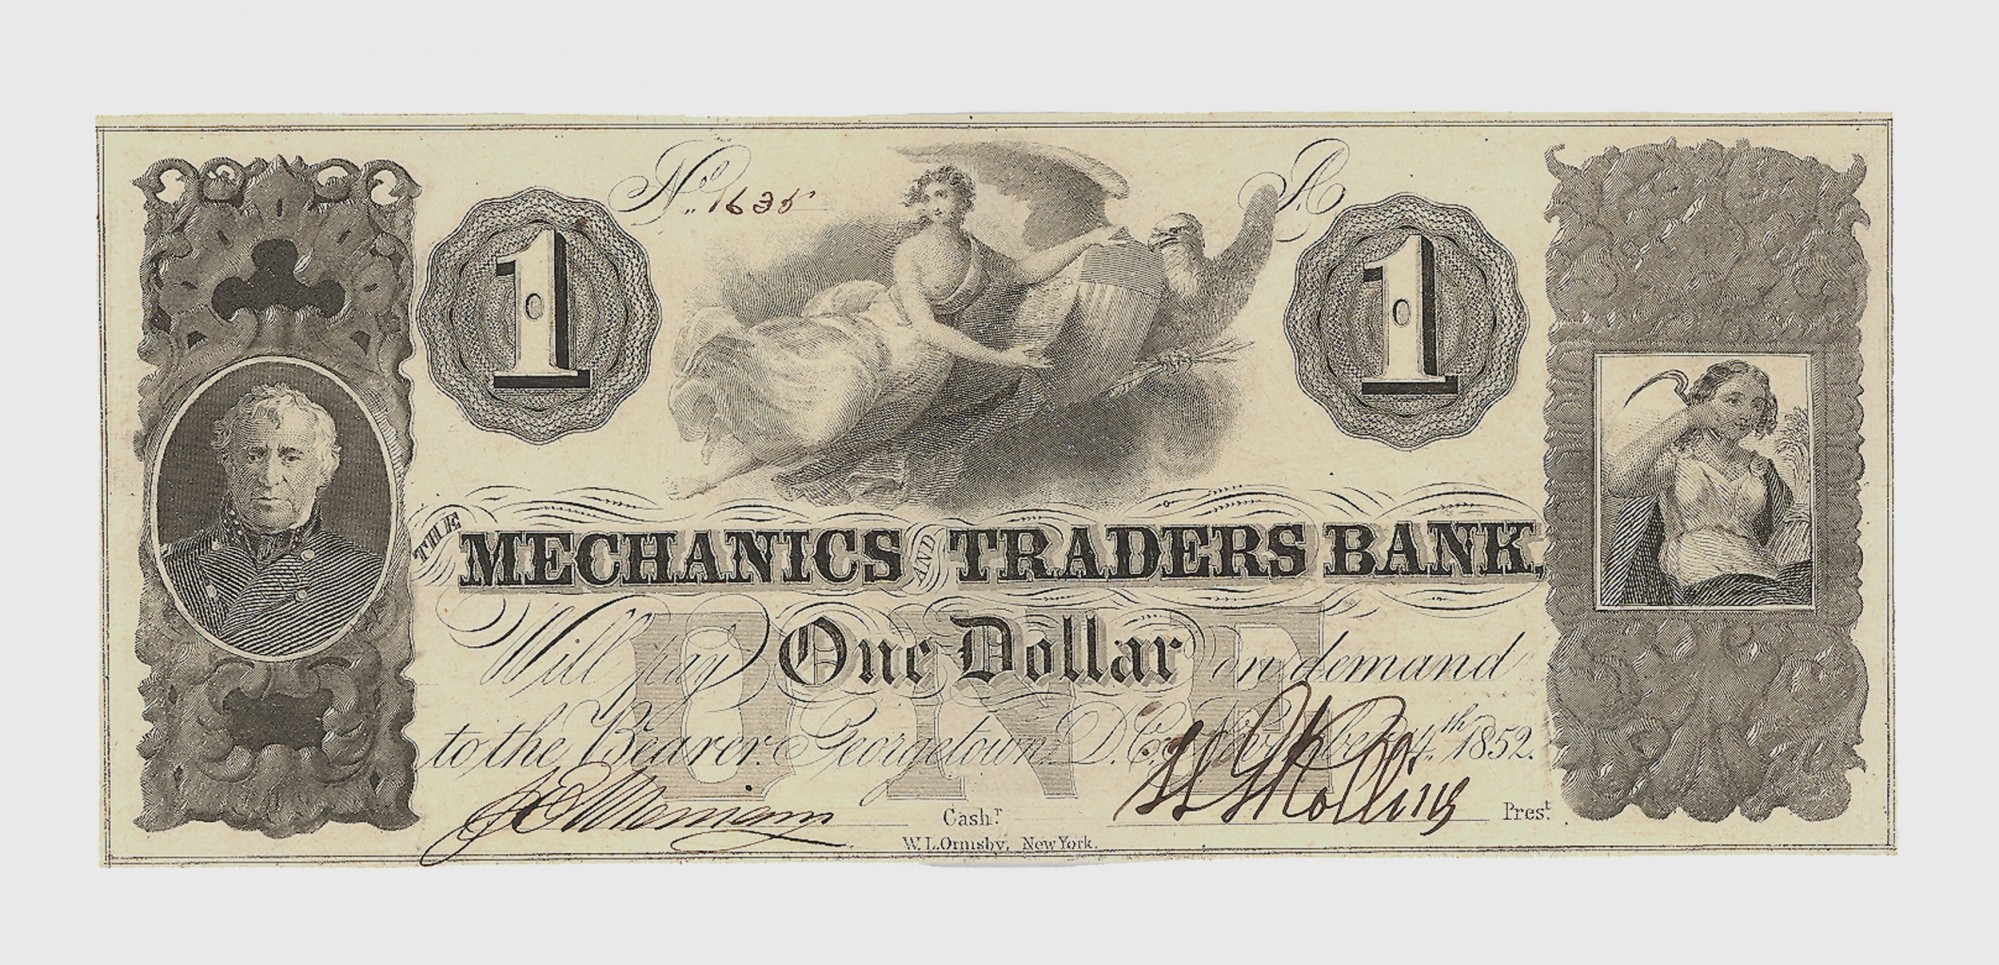 THE MECHANICS AND TRADERS BANK, WASHINGTON D.C. $1 NOTE